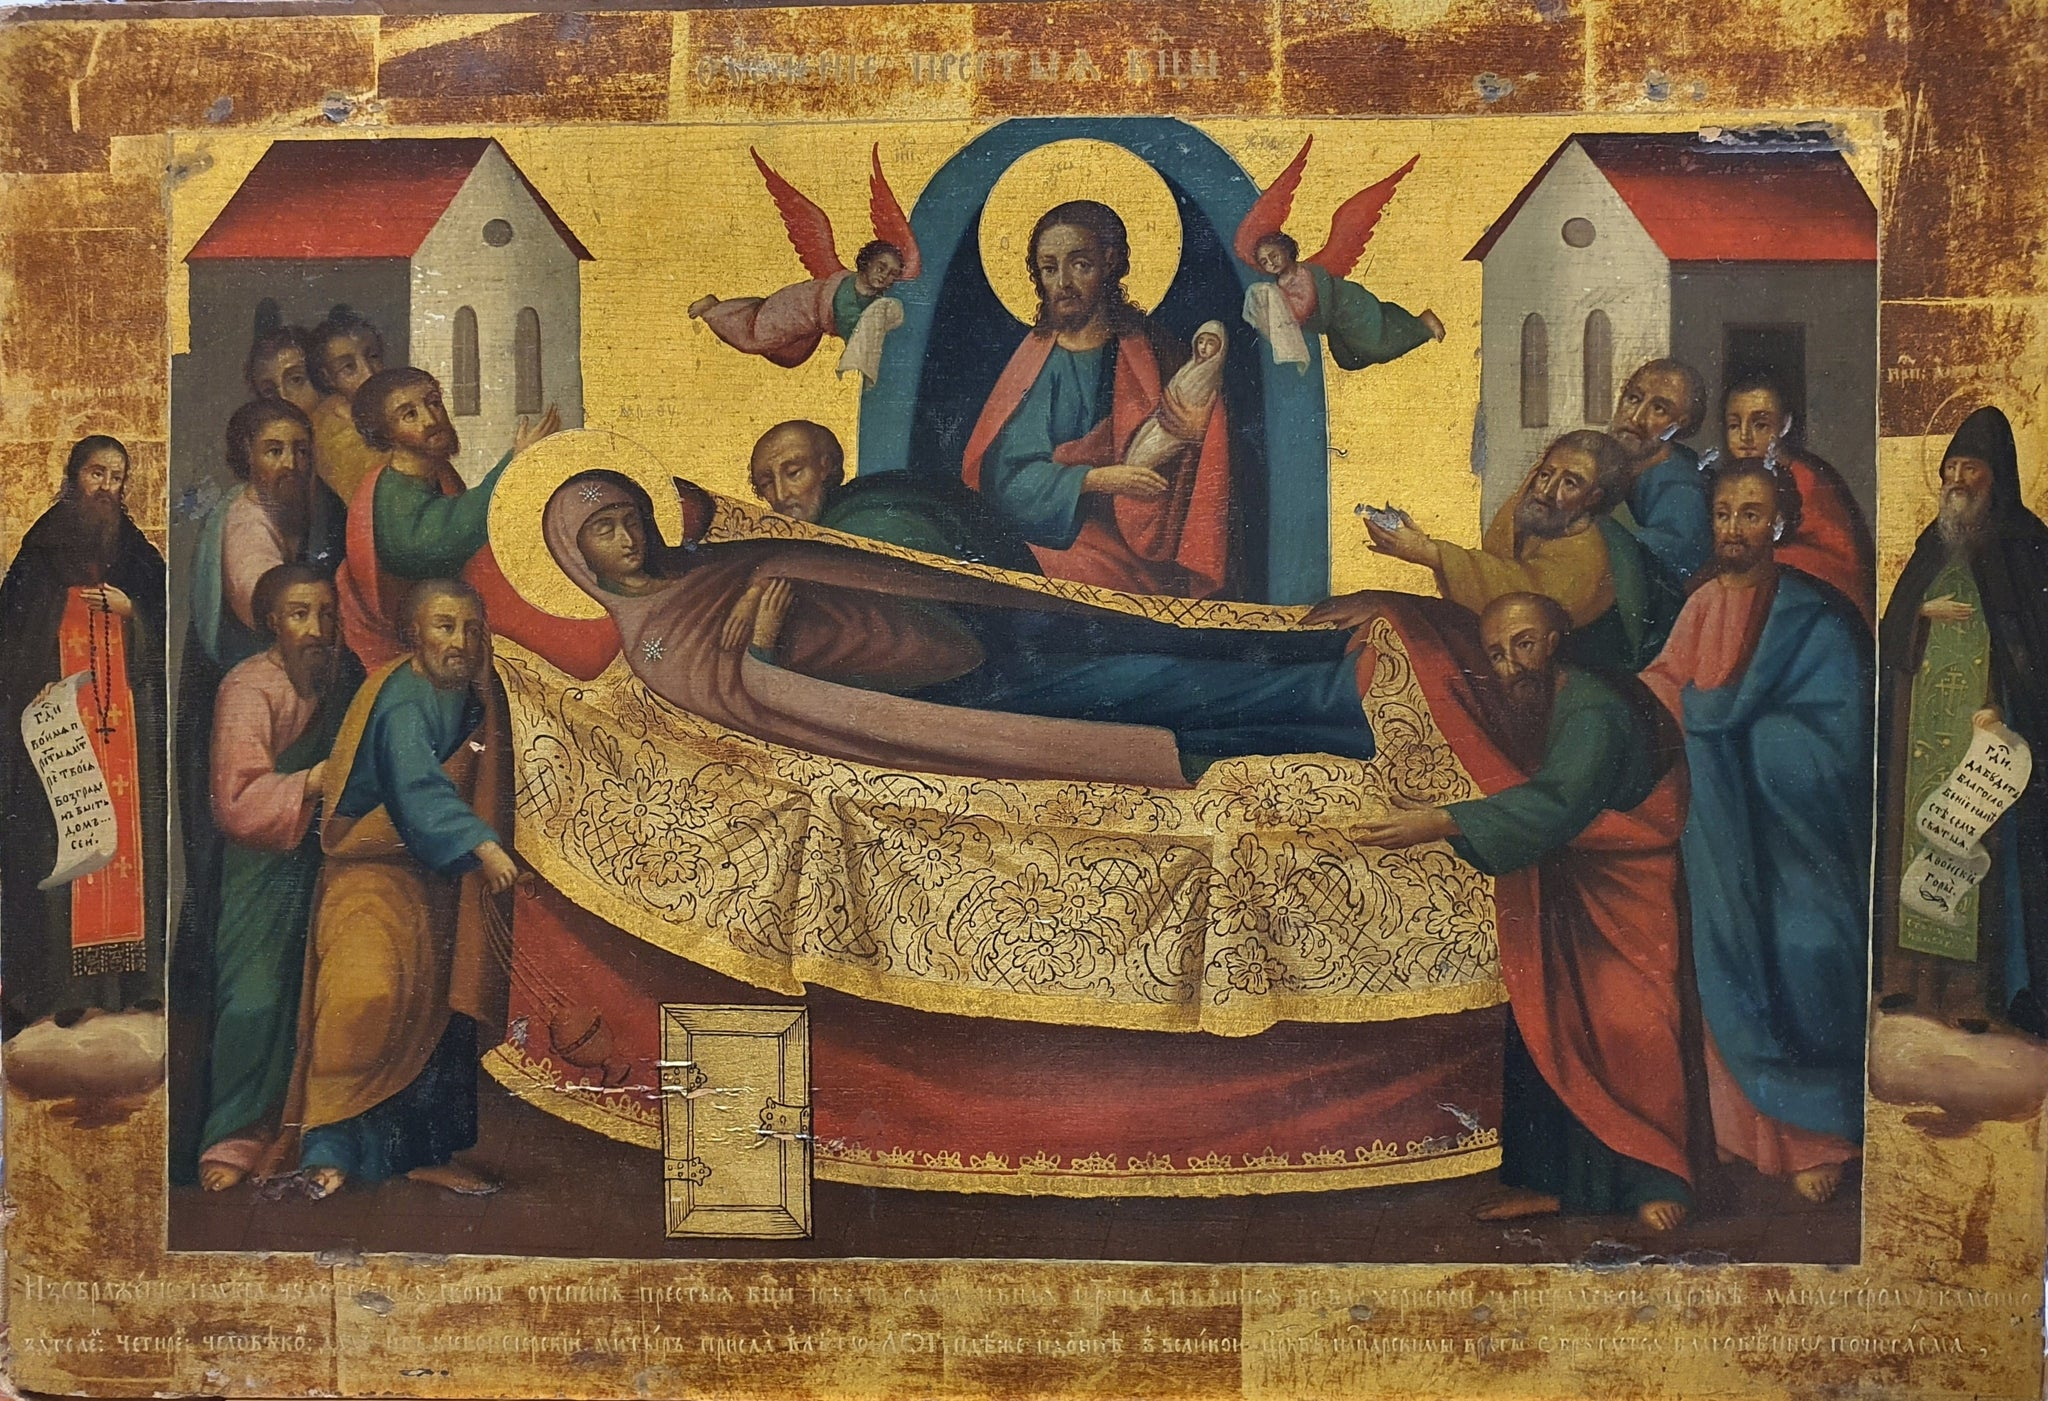 Depiction of The Feast of the Dormition of the Theotokos which commemorates the death, resurrection and glorification of the Mother of God